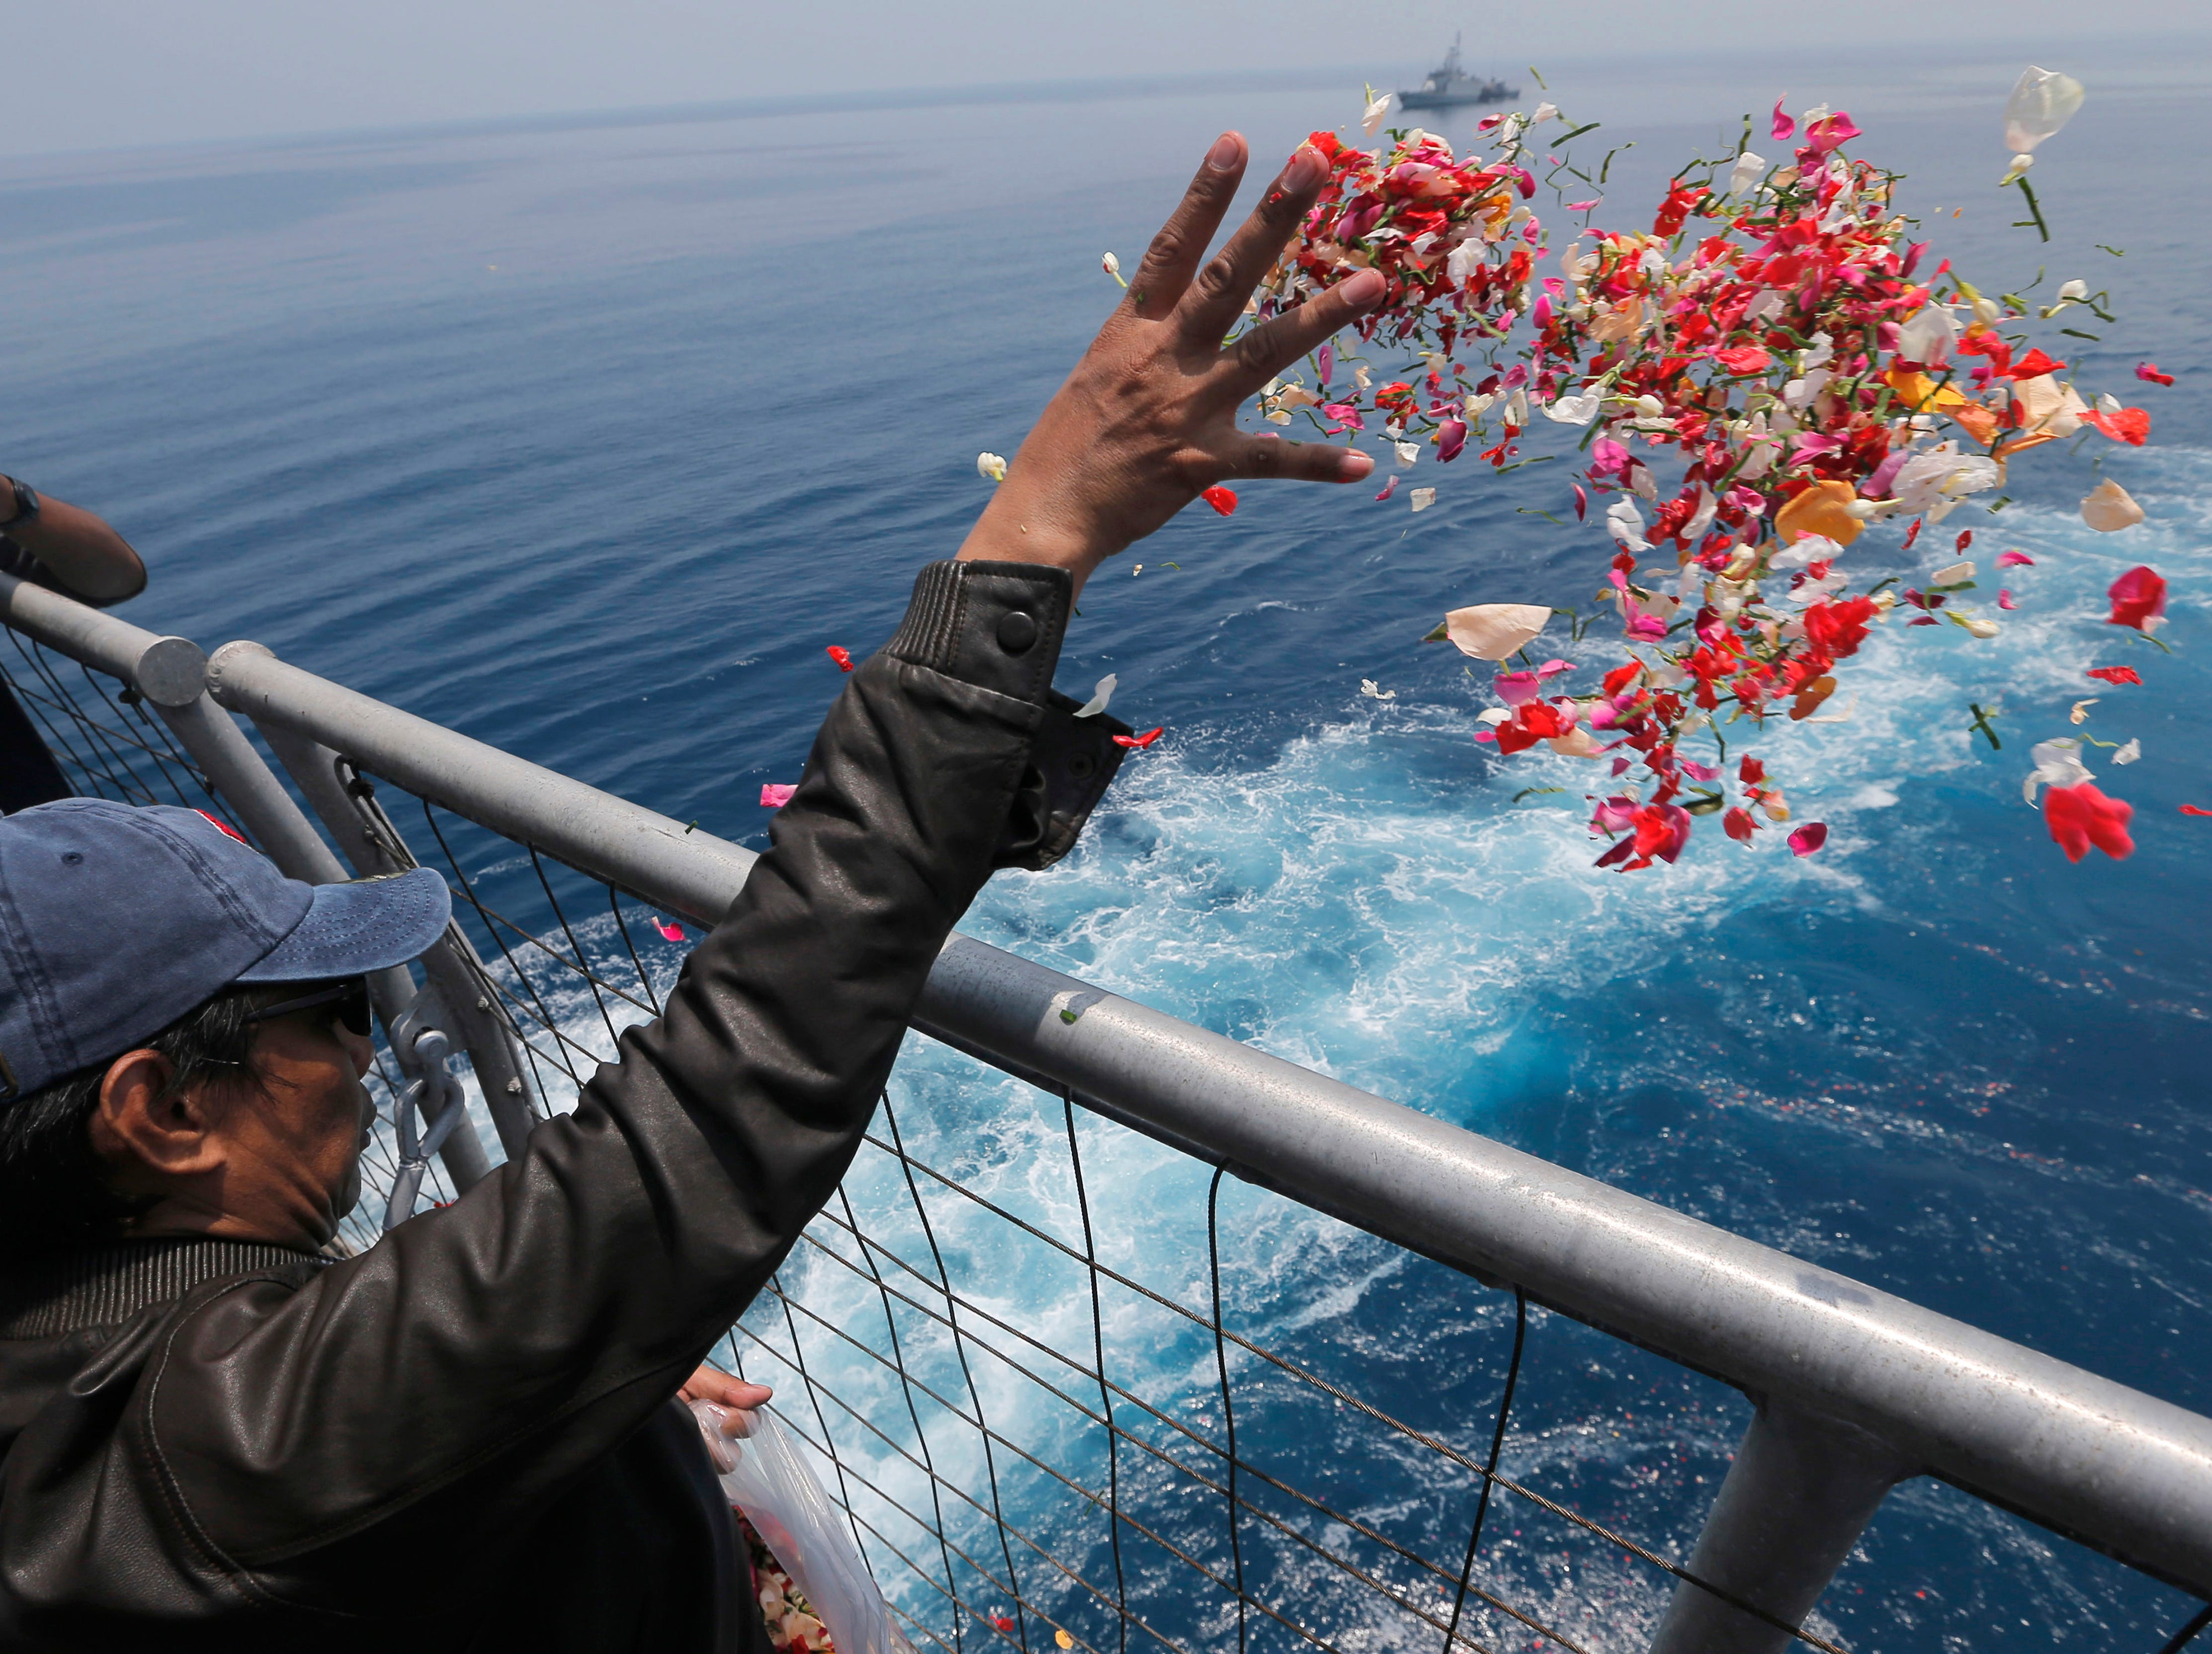 A relative sprinkles flowers for the victims of the crashed Lion Air flight 610 from an Indonesia Navy ship in the waters where the airplane is believed to have crashed in Tanjung Karawang, Indonesia, Tuesday, Nov. 6, 2018.